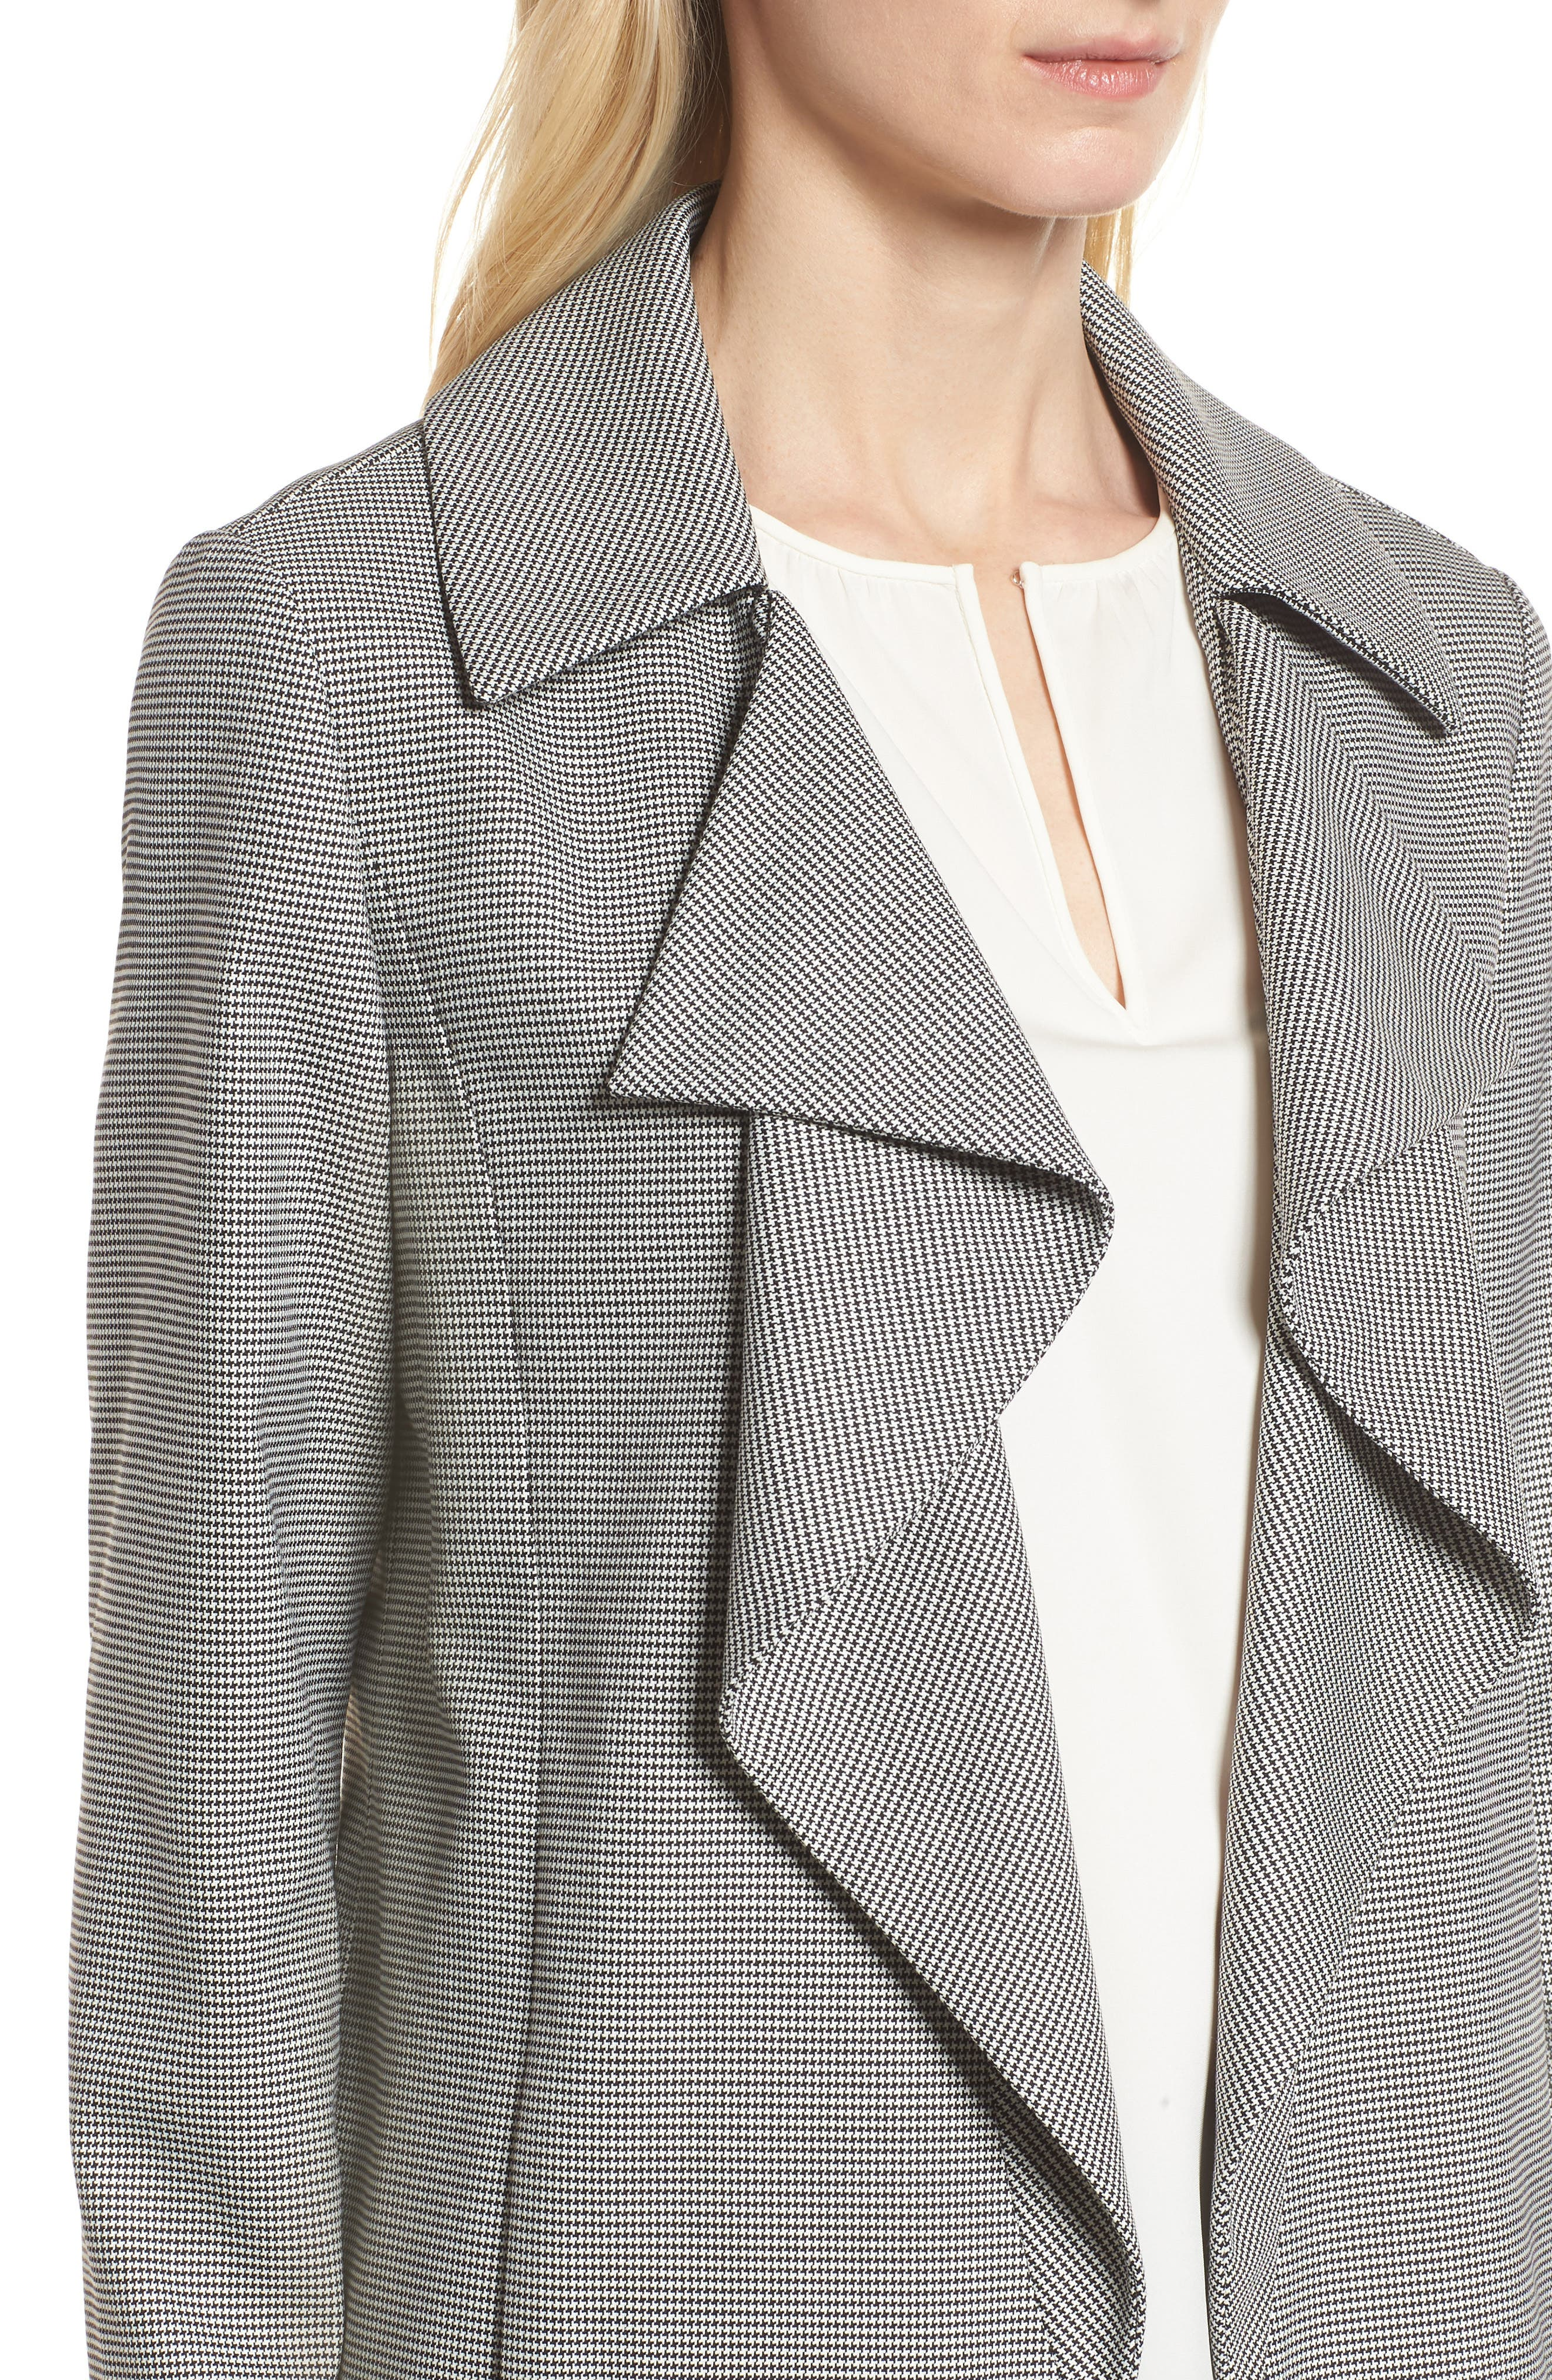 Houndstooth Open Front Jacket,                             Alternate thumbnail 4, color,                             Black- White Houndstooth